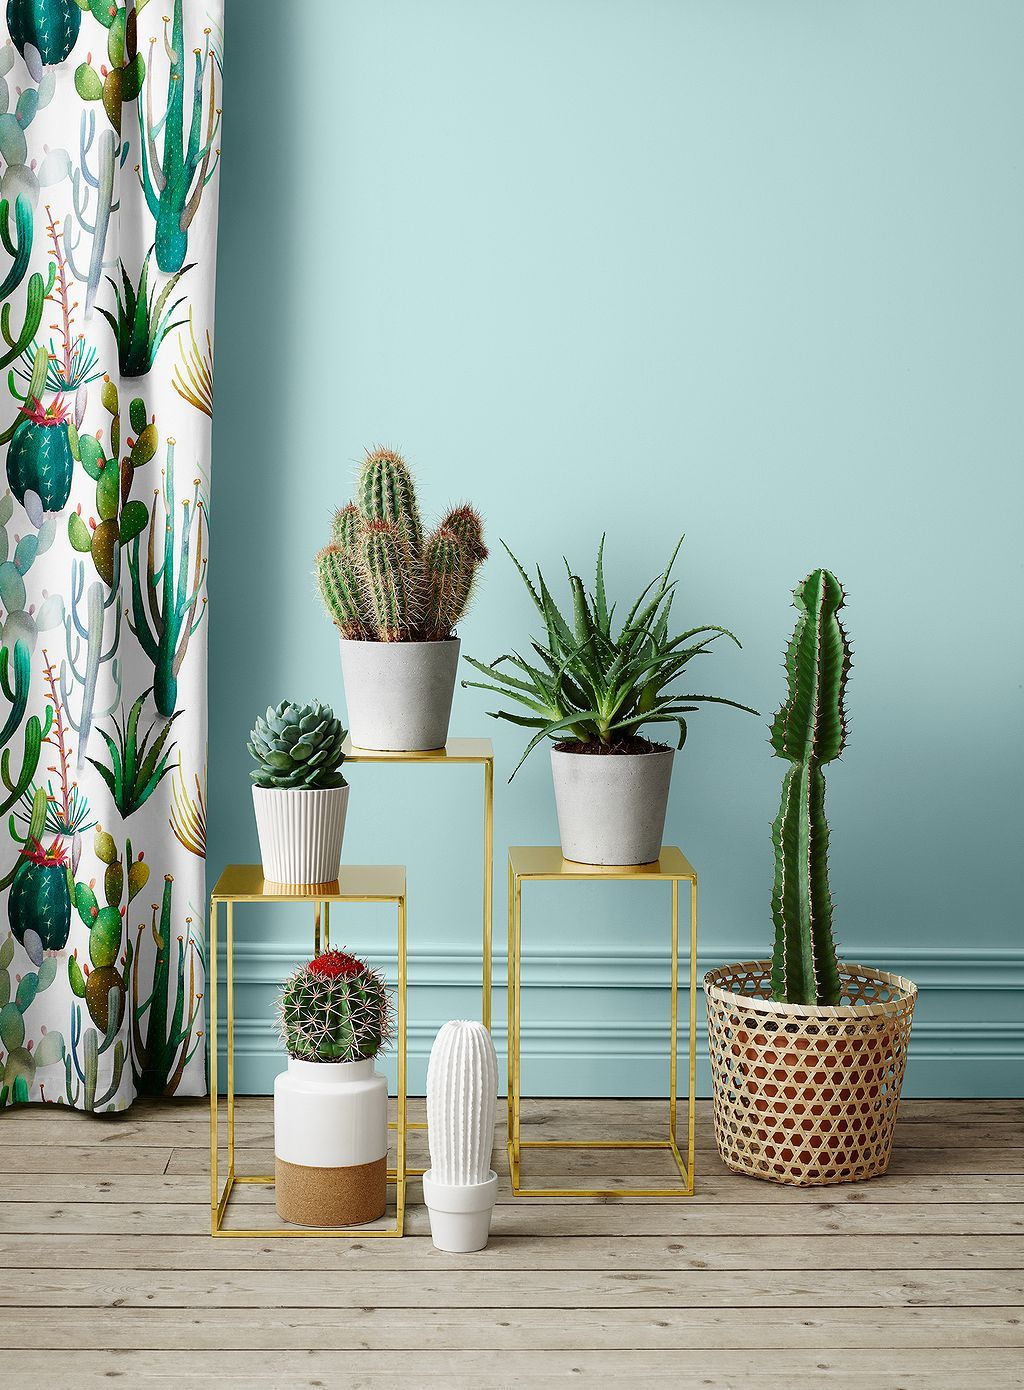 38 Awesome Succulent Decoration Ideas for Living Room | Decoration